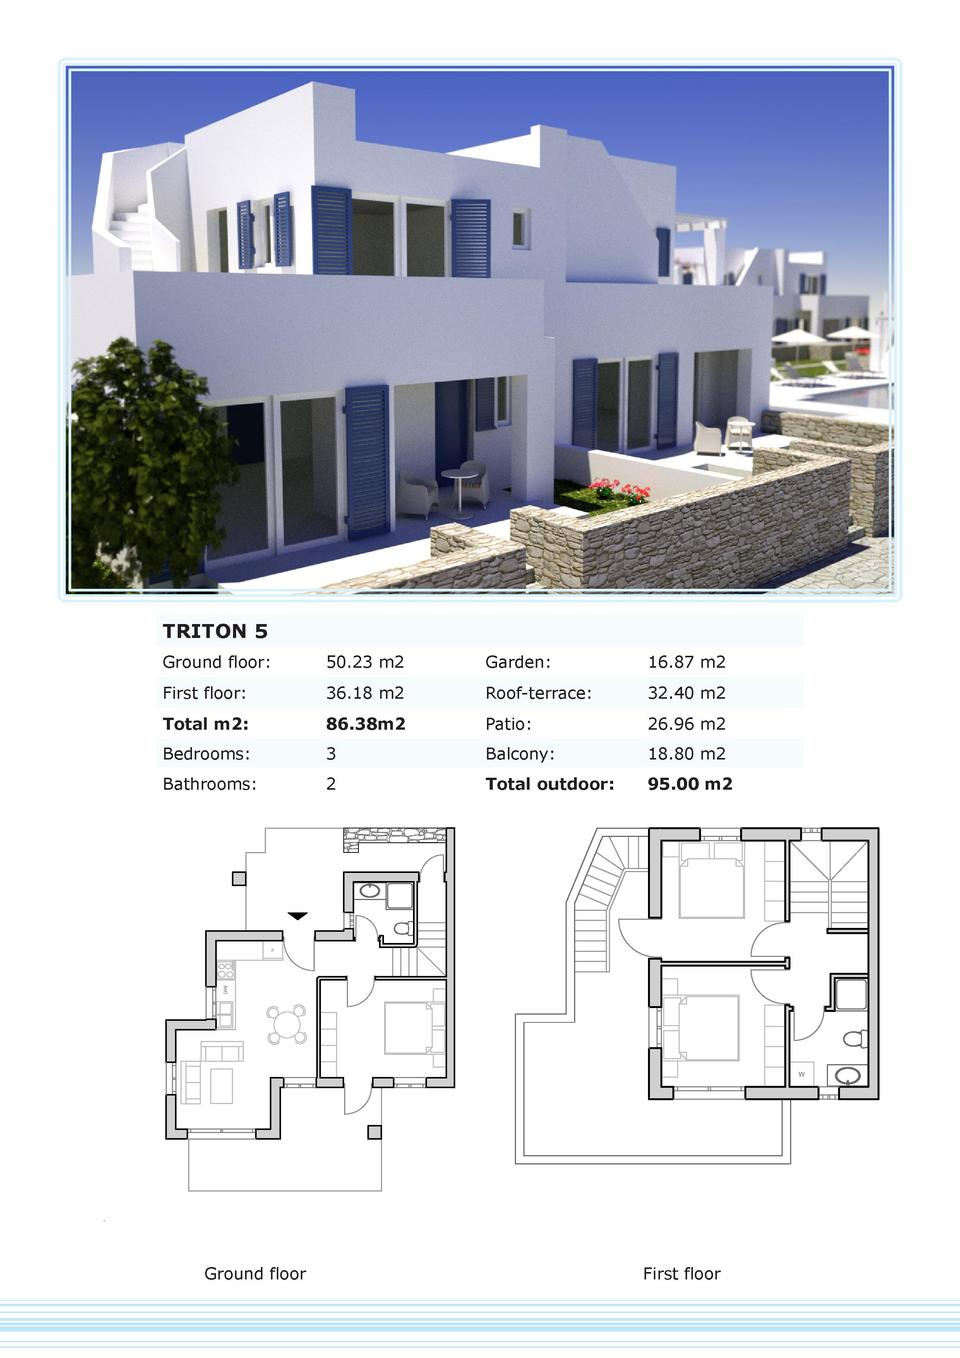 TRITON 5 Ground floor   50.23 m2  Garden   16.87 m2  First floor   36.18 m2  Roof-terrace   32.40 m2  Total m2   86.38m2  ...